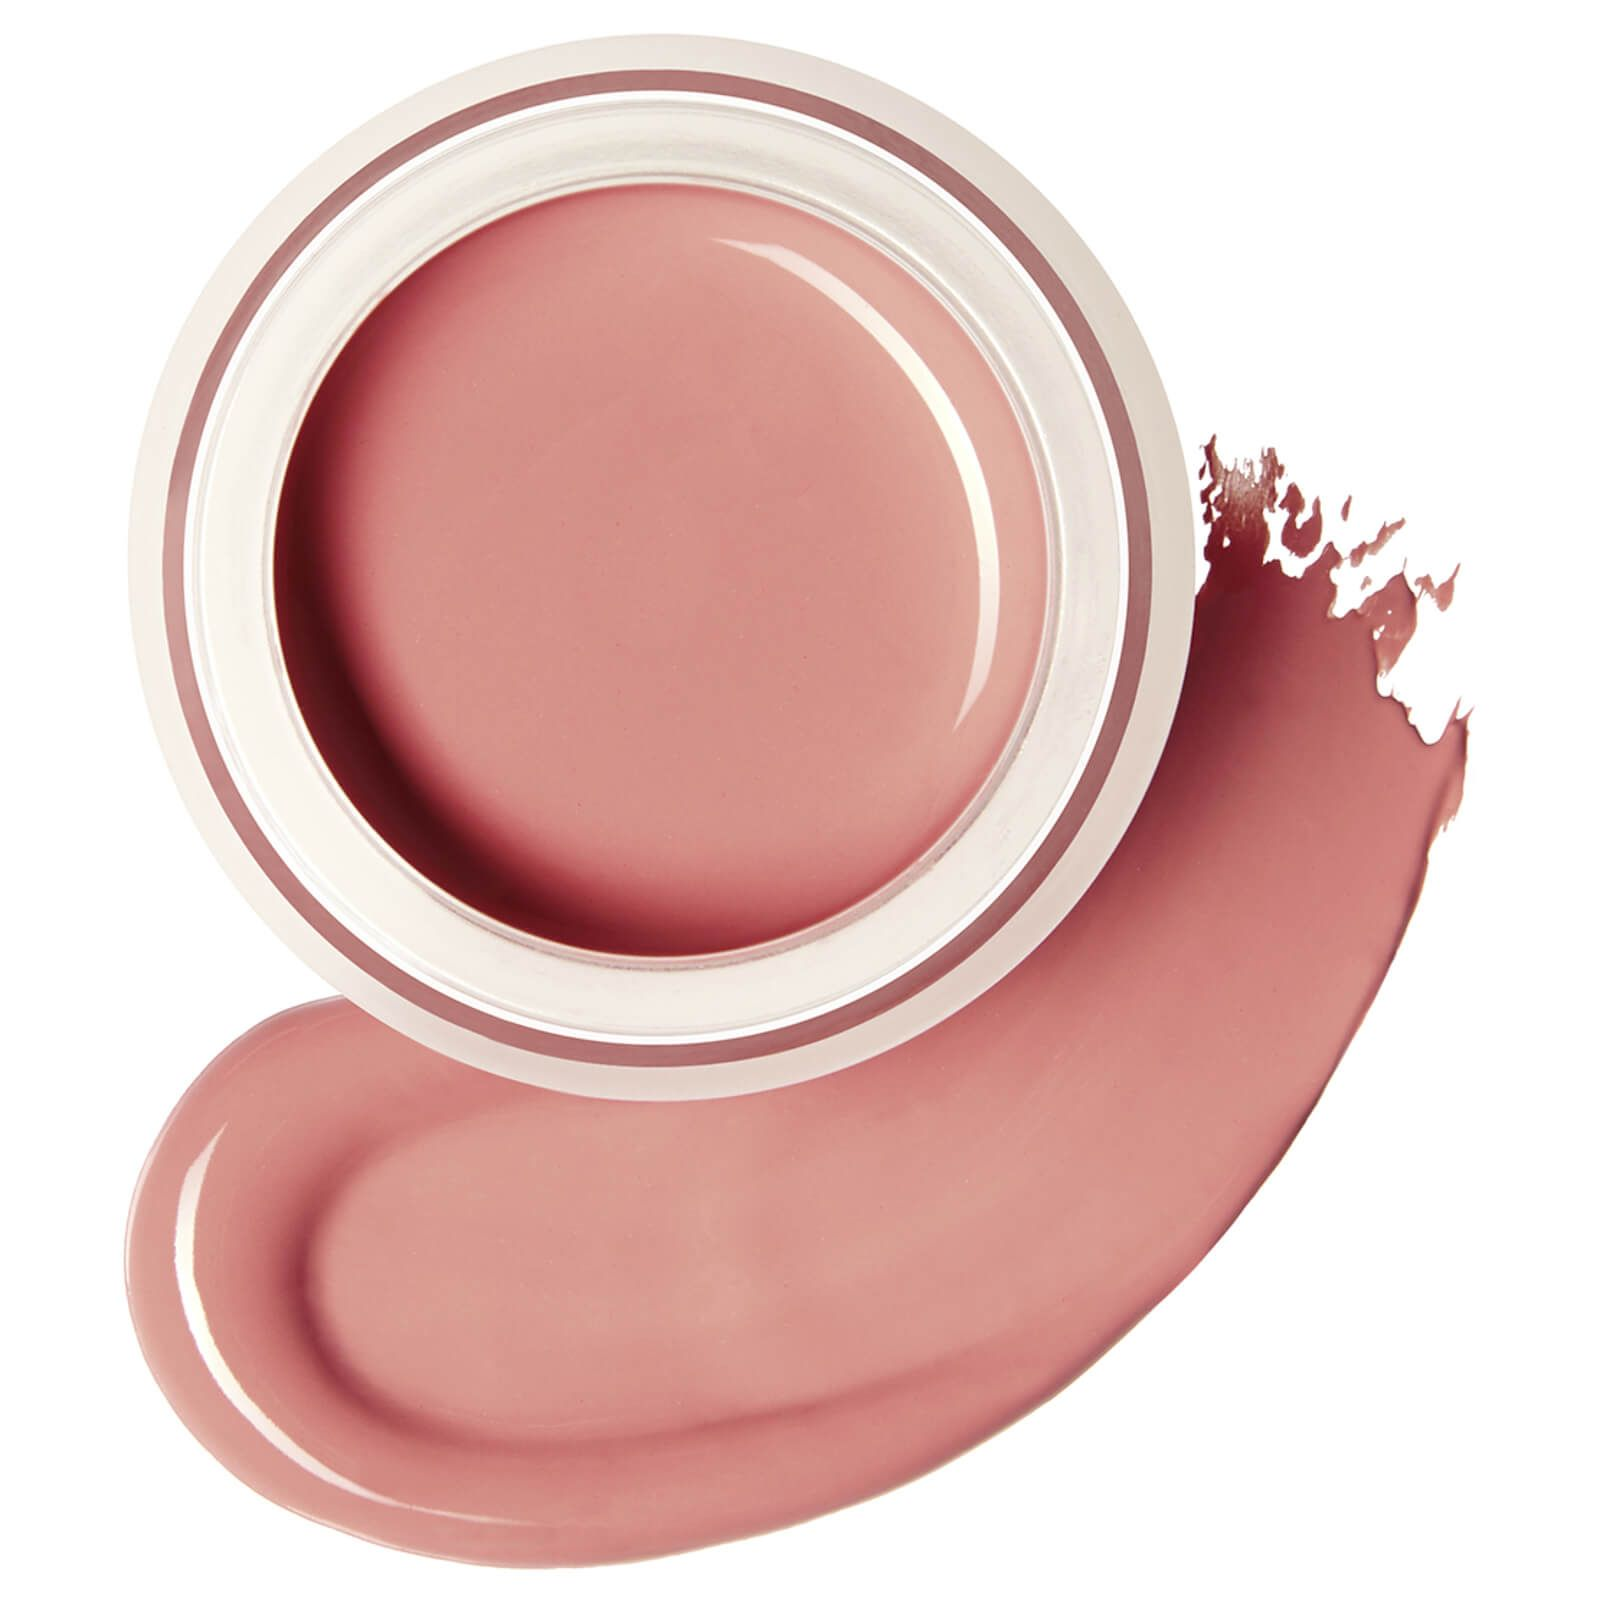 Colour Veil Various Shades In 2021 Color Veil Blusher Oil Free Moisturizers